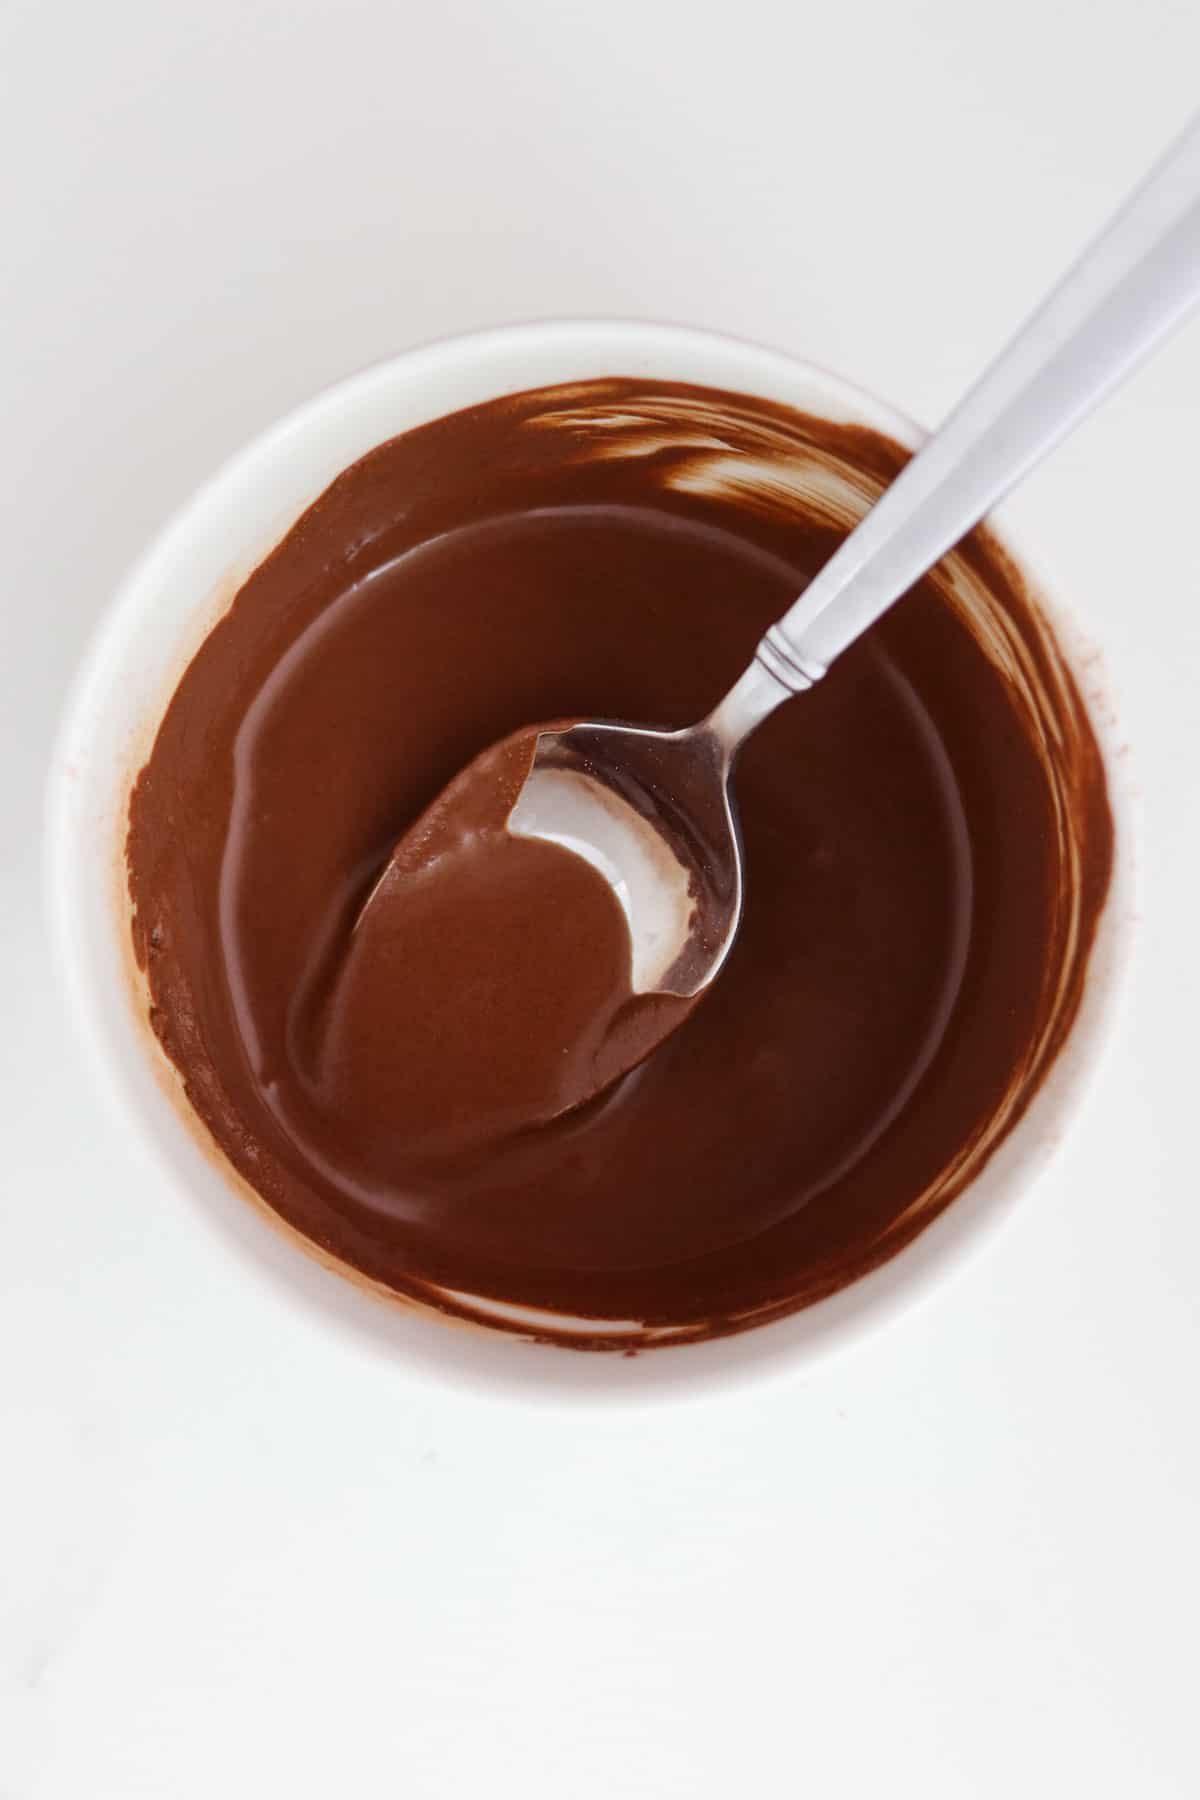 Melted chocolate in a bowl with a spoon.